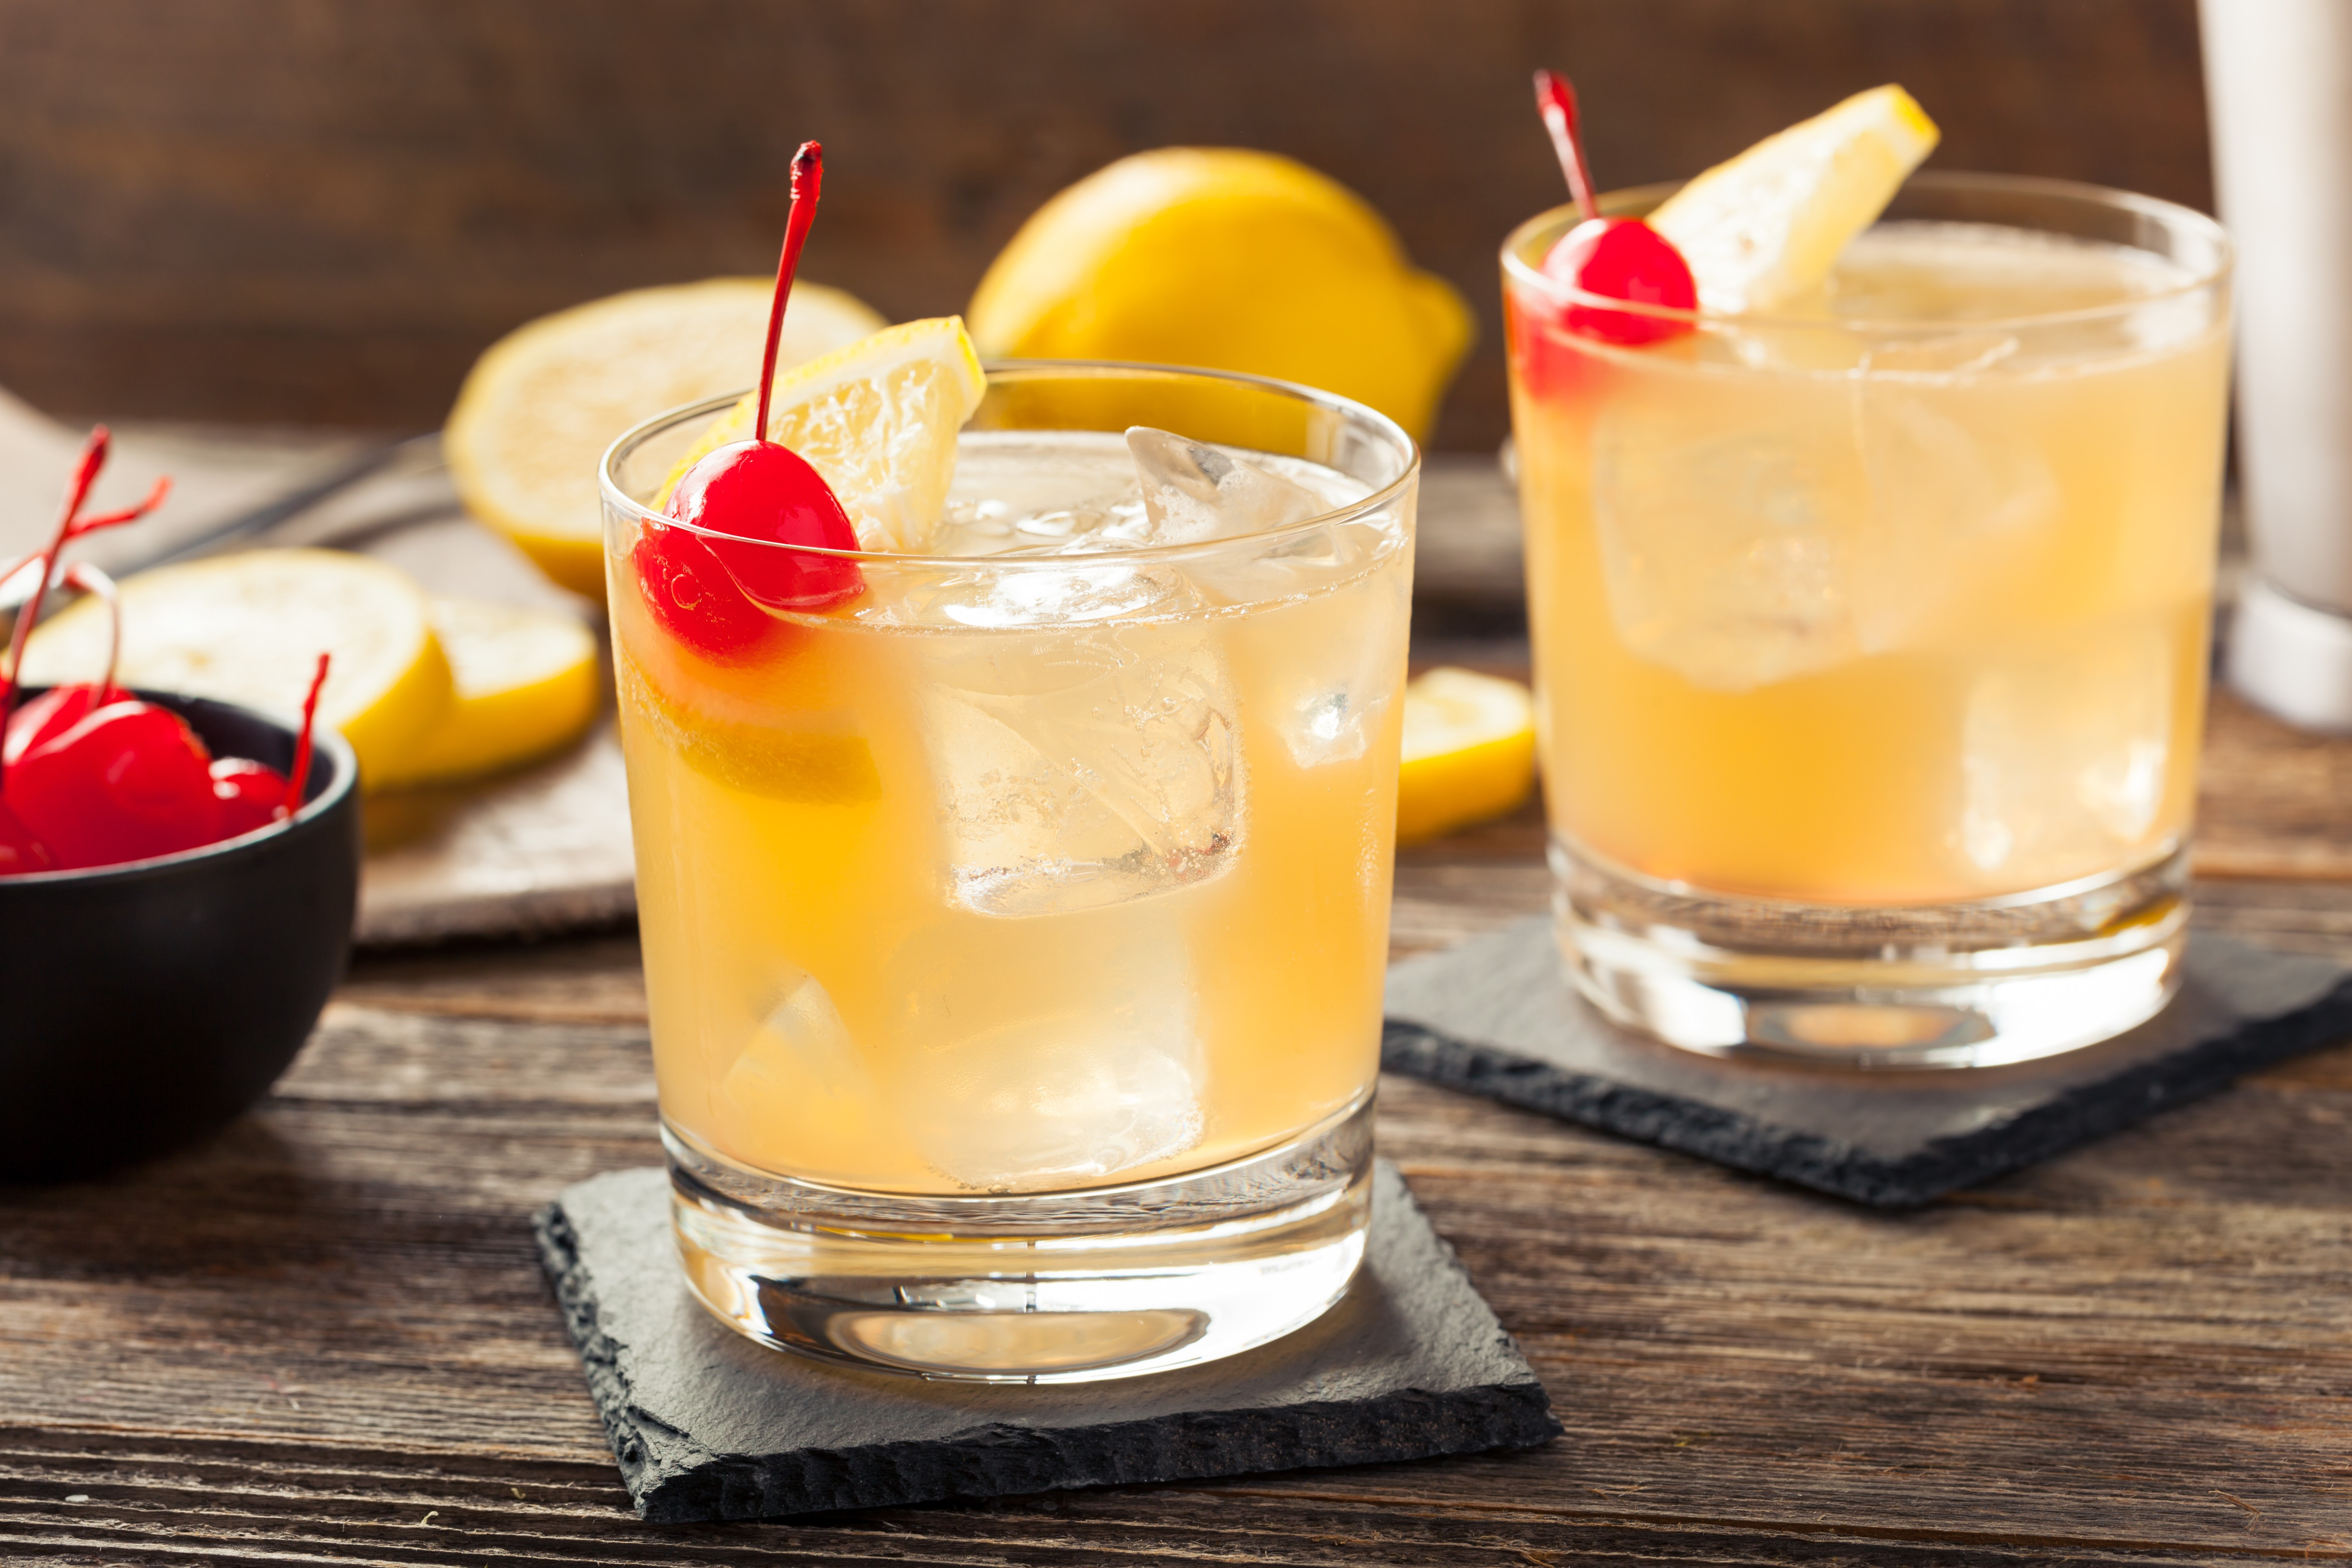 50 drinks in 50 states: Whiskey sour in Virginia ...